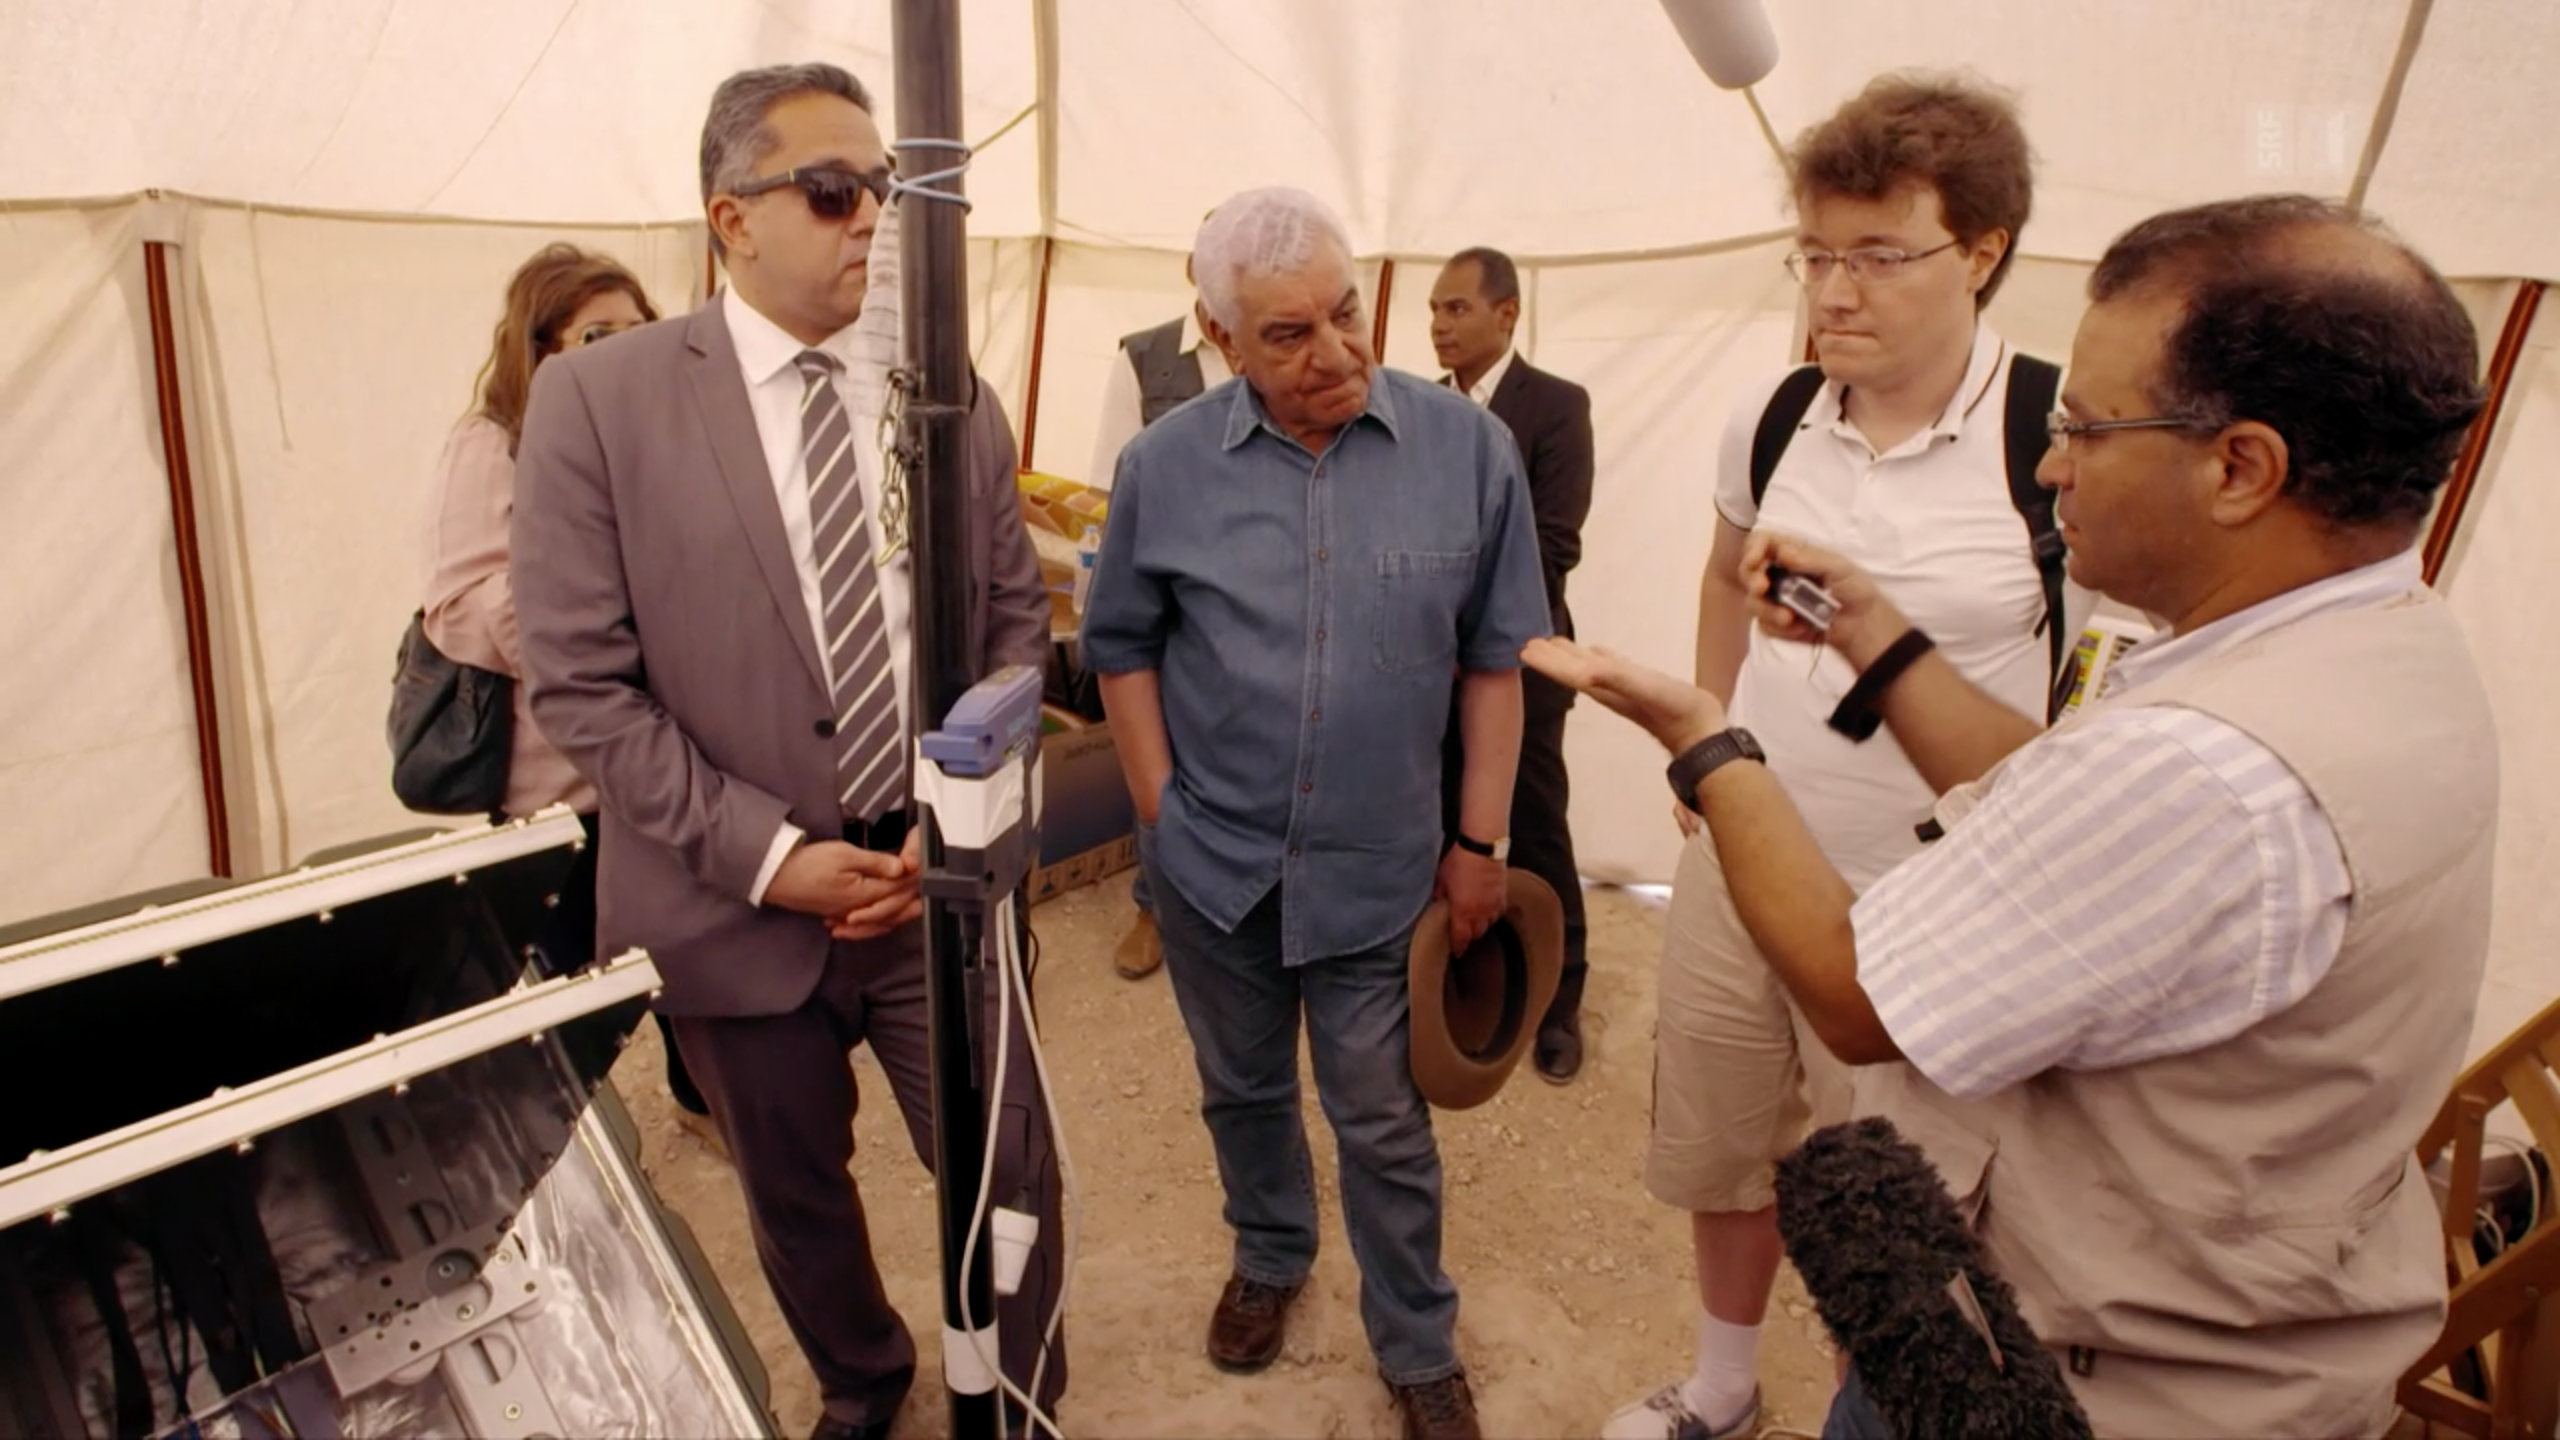 Zahi Hawass is critical of her project to researchers from Scan-Pyramids (Image: © ScanPyramids)